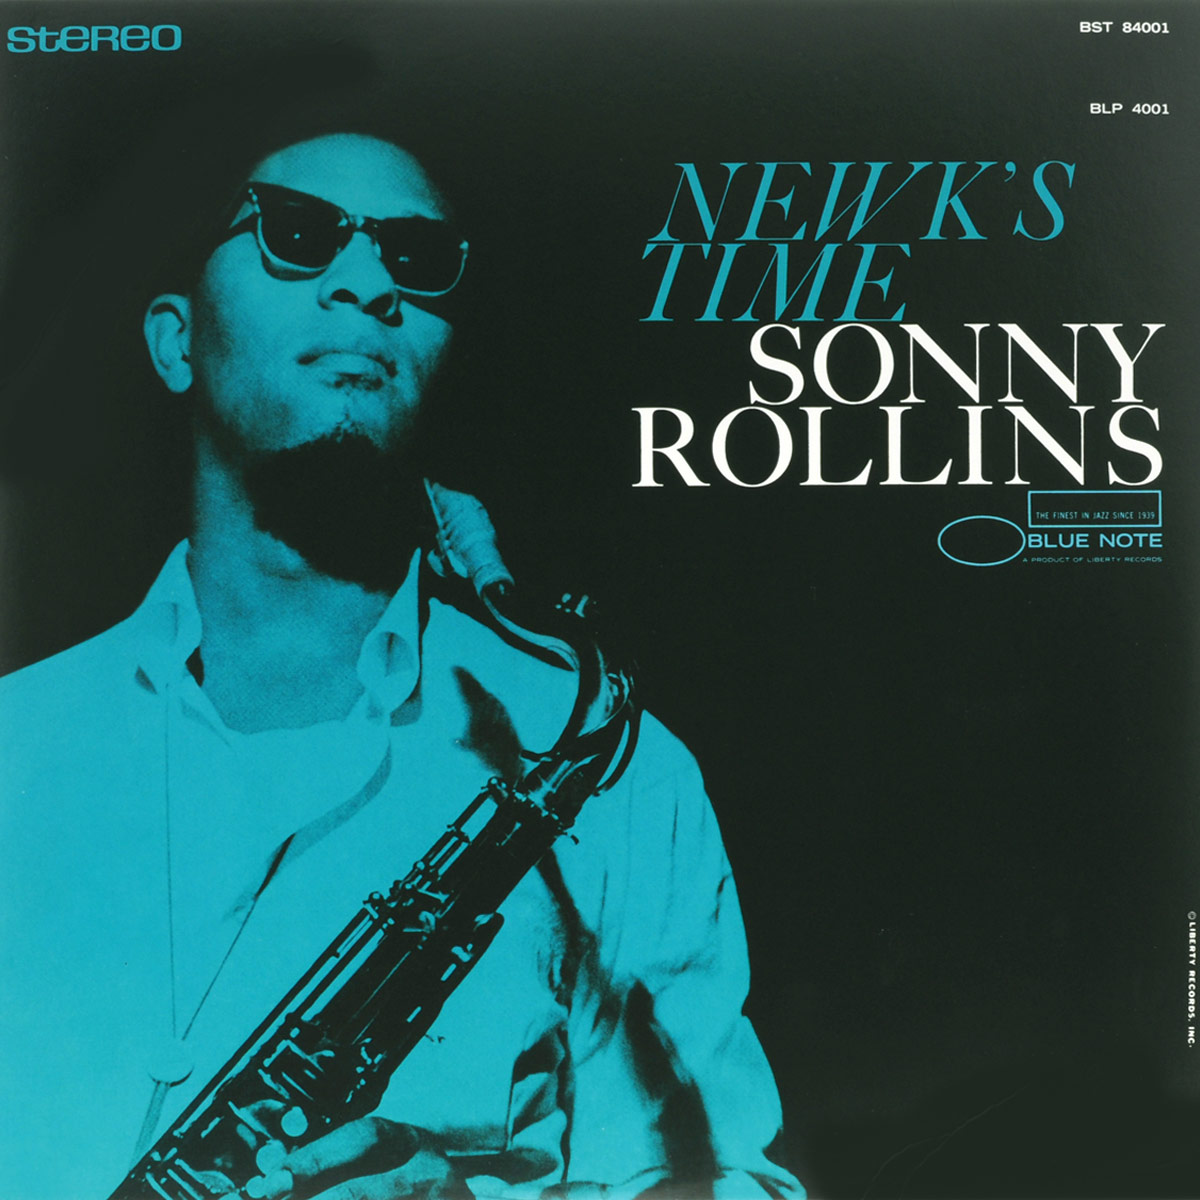 Сонни Роллинз Sonny Rollins. Newk's Time (LP) сонни роллинз sonny rollins holding the stage road shows vol 4